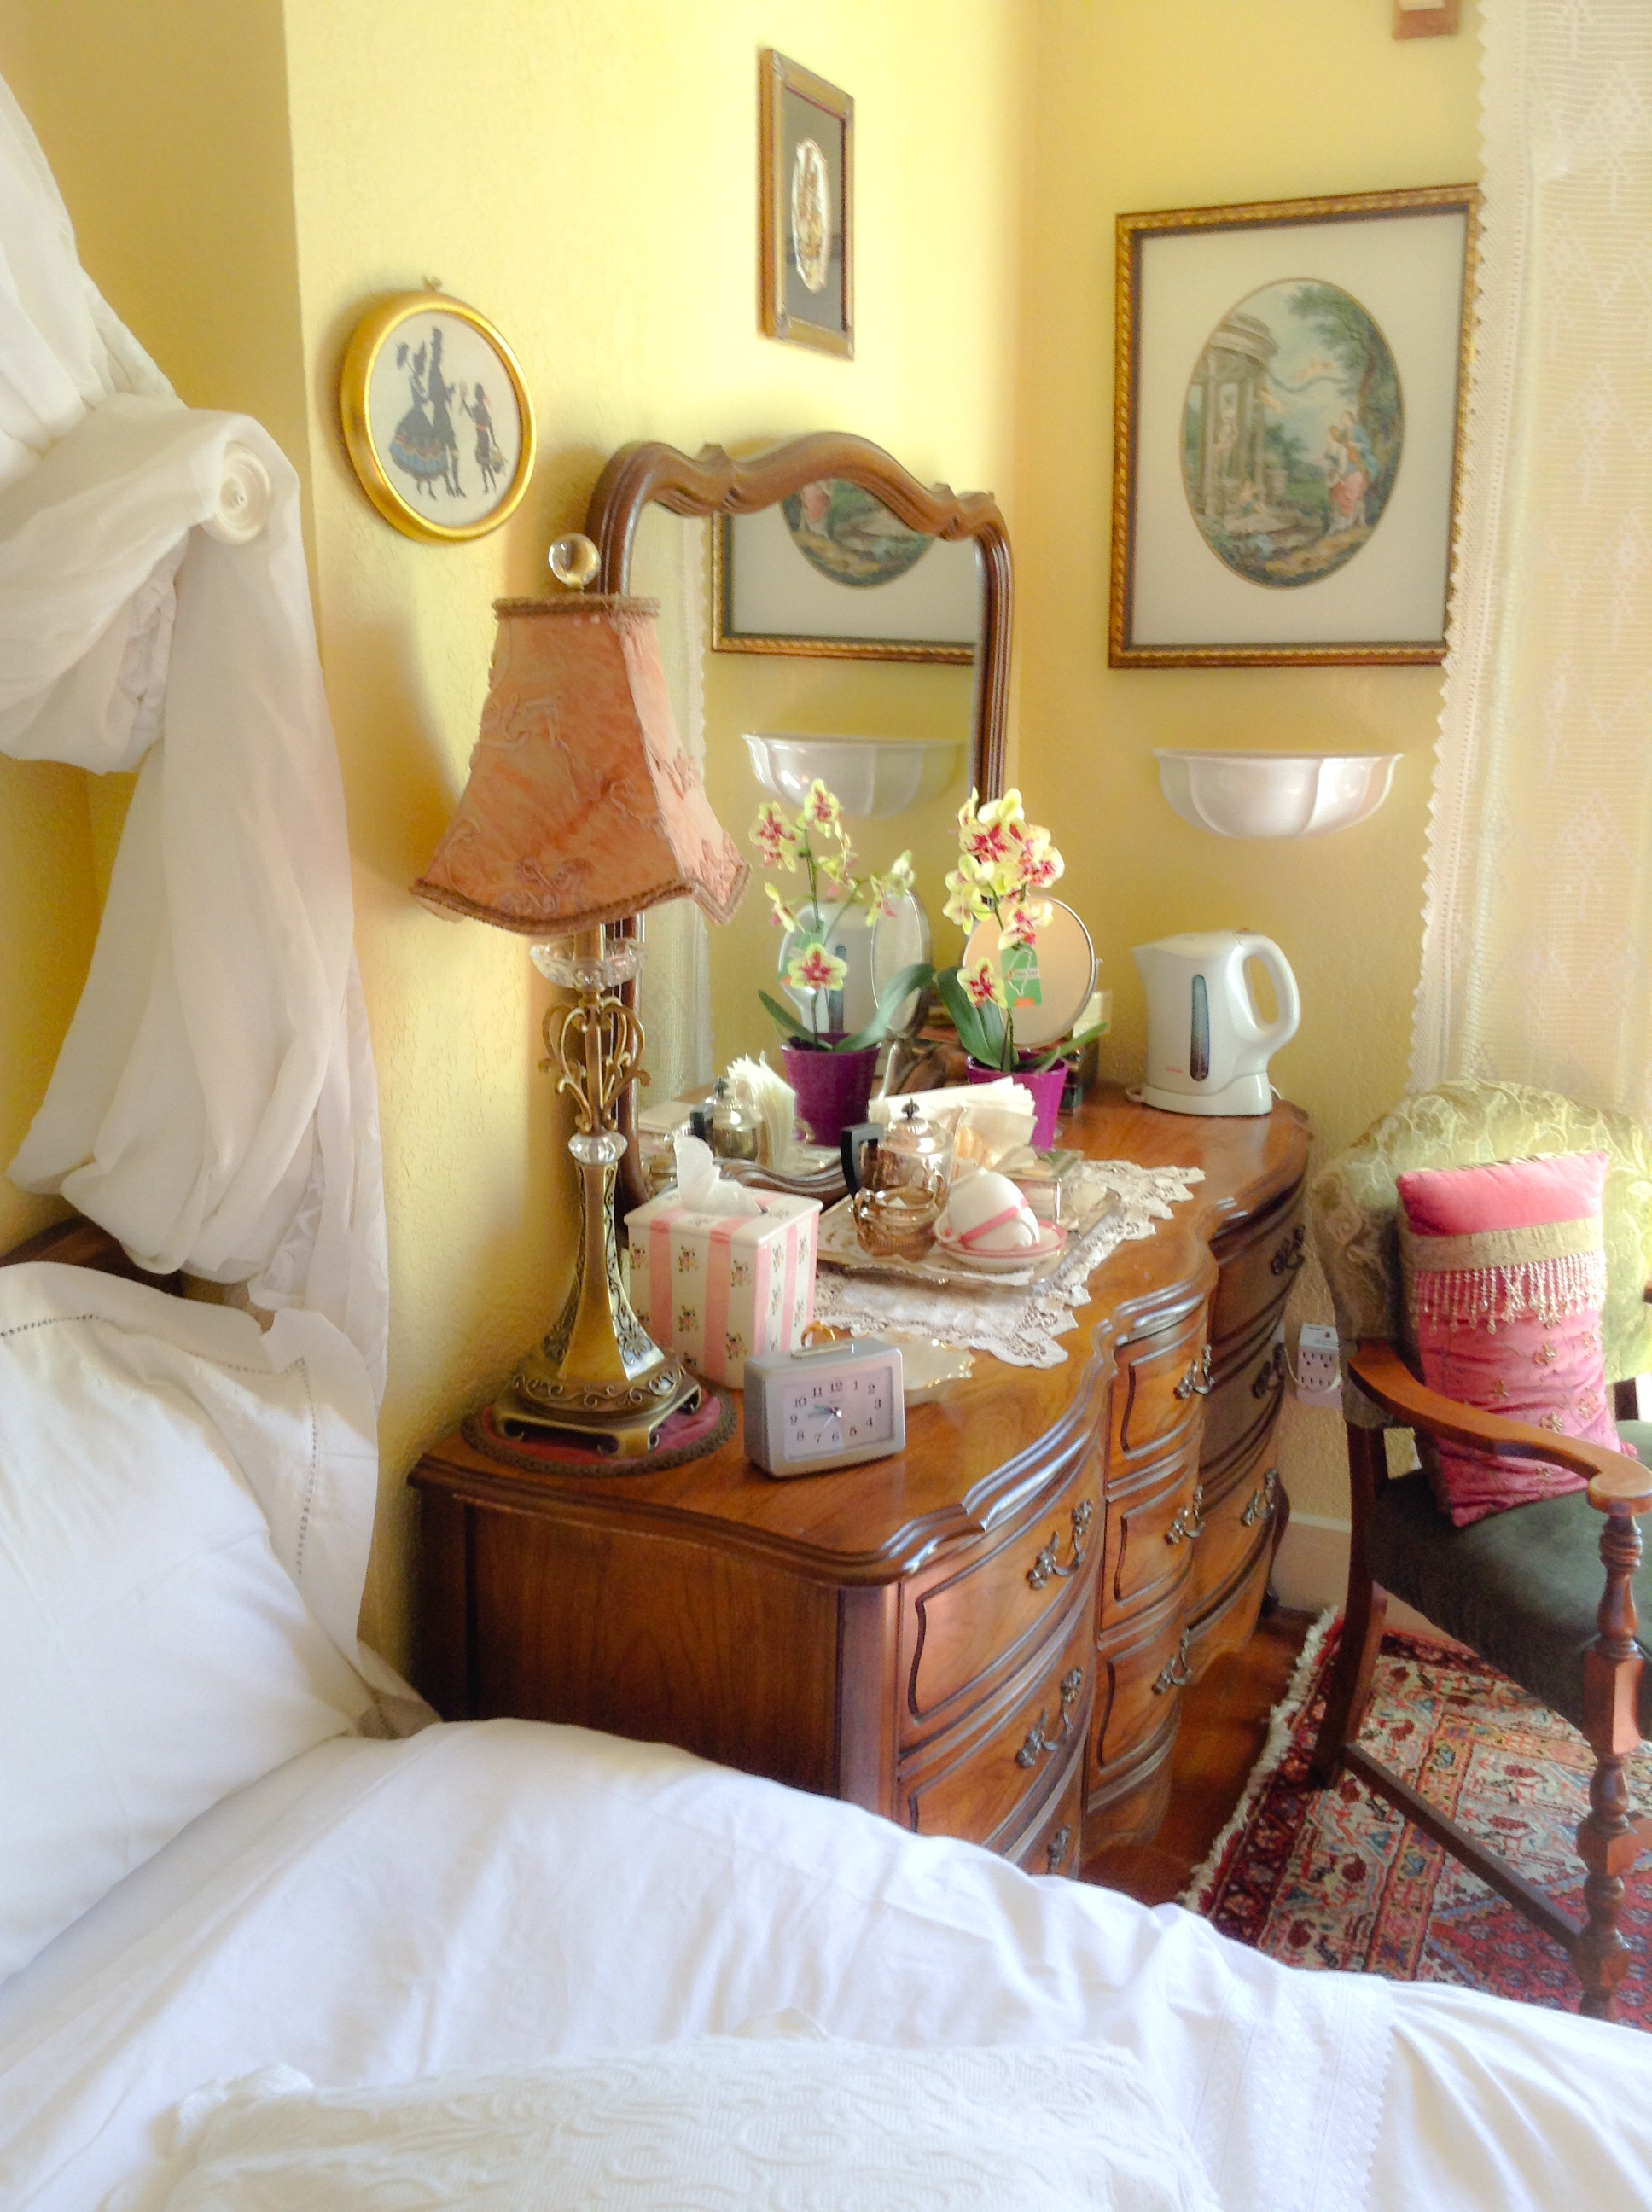 Victoria BC Accommodations in Our Lavender Room